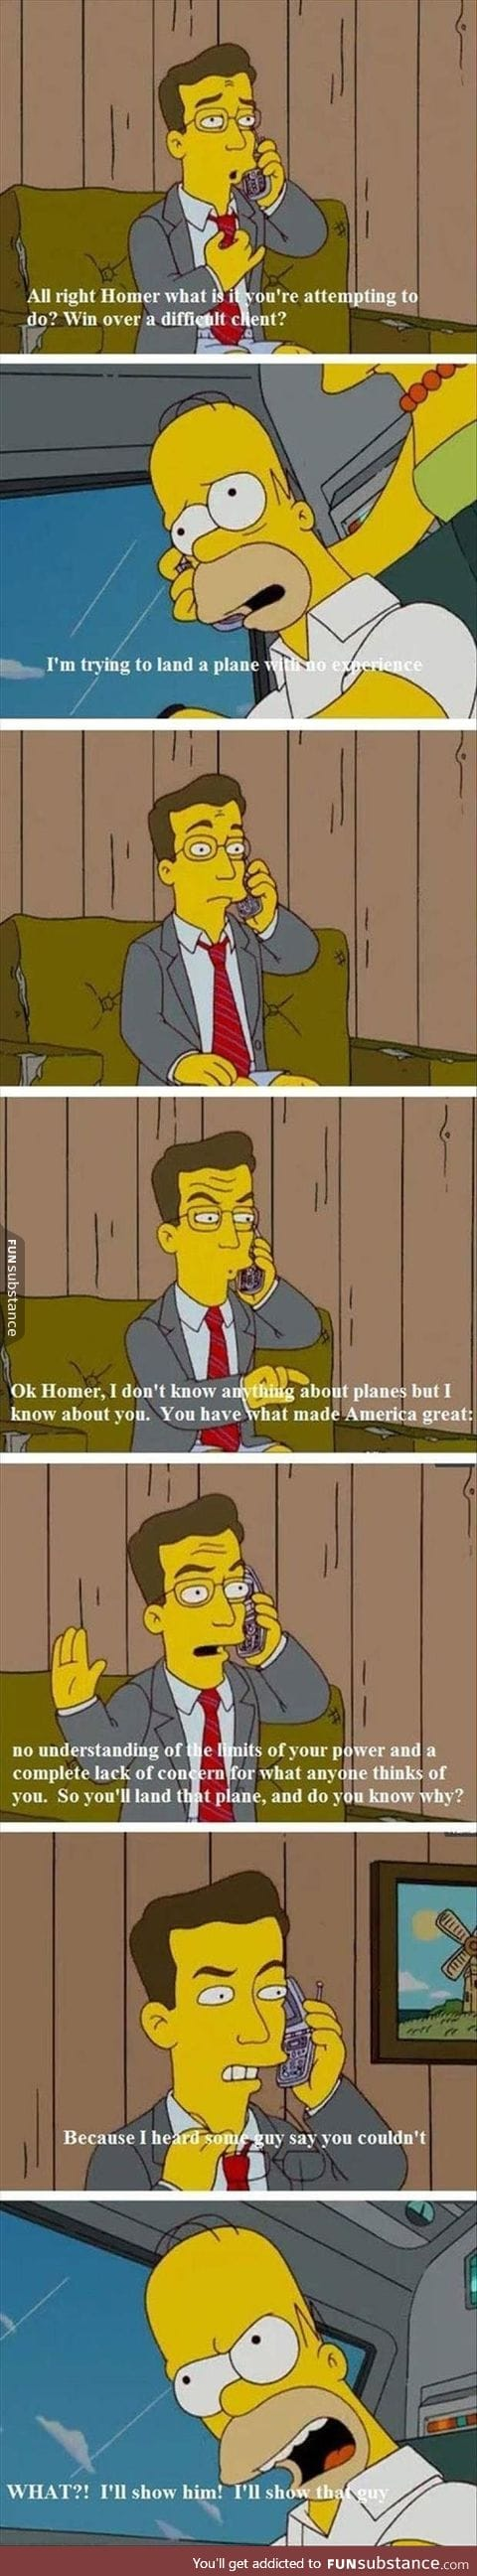 Homer is the man